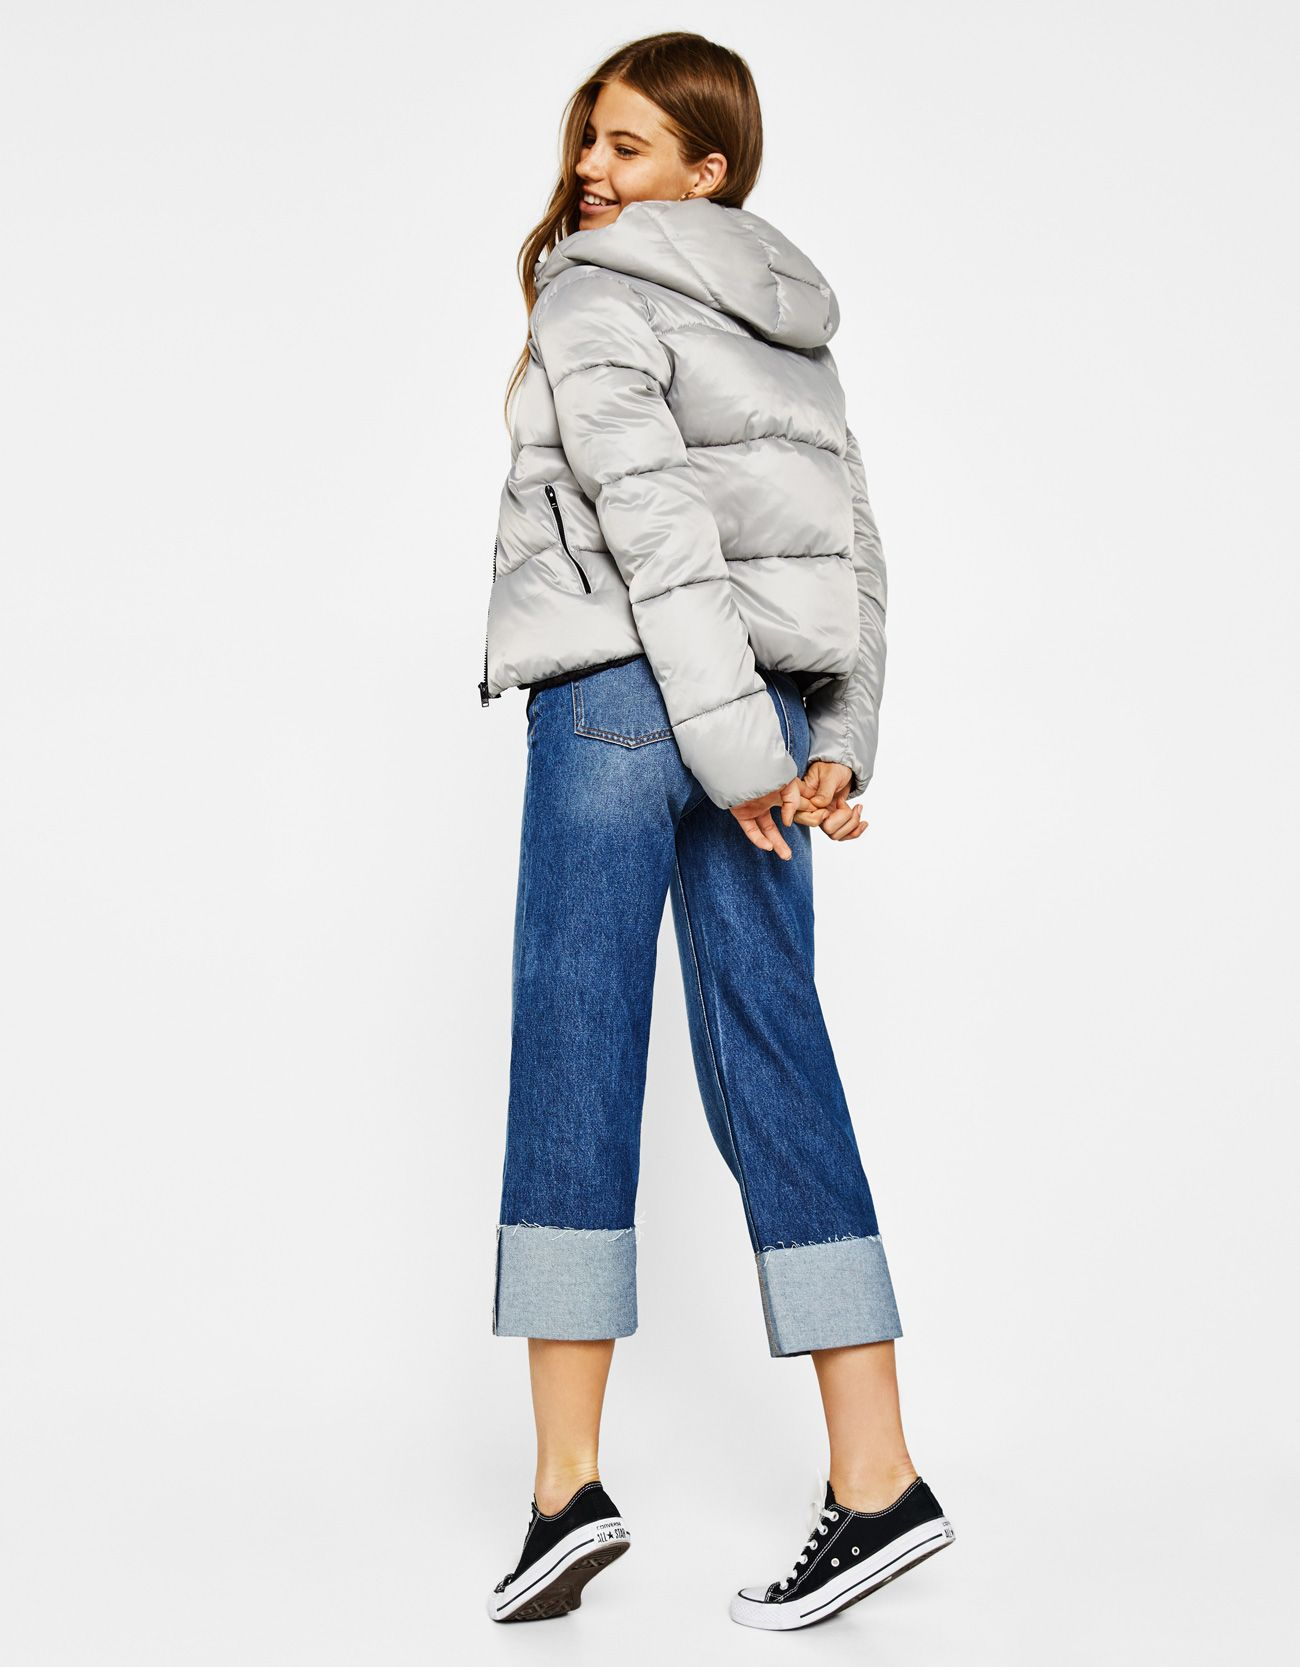 Puffer Jacket With Hood Discover This And Many More Items In Bershka With New Products Every Week Jackets Hooded Jacket Puffer Jackets [ 1667 x 1300 Pixel ]